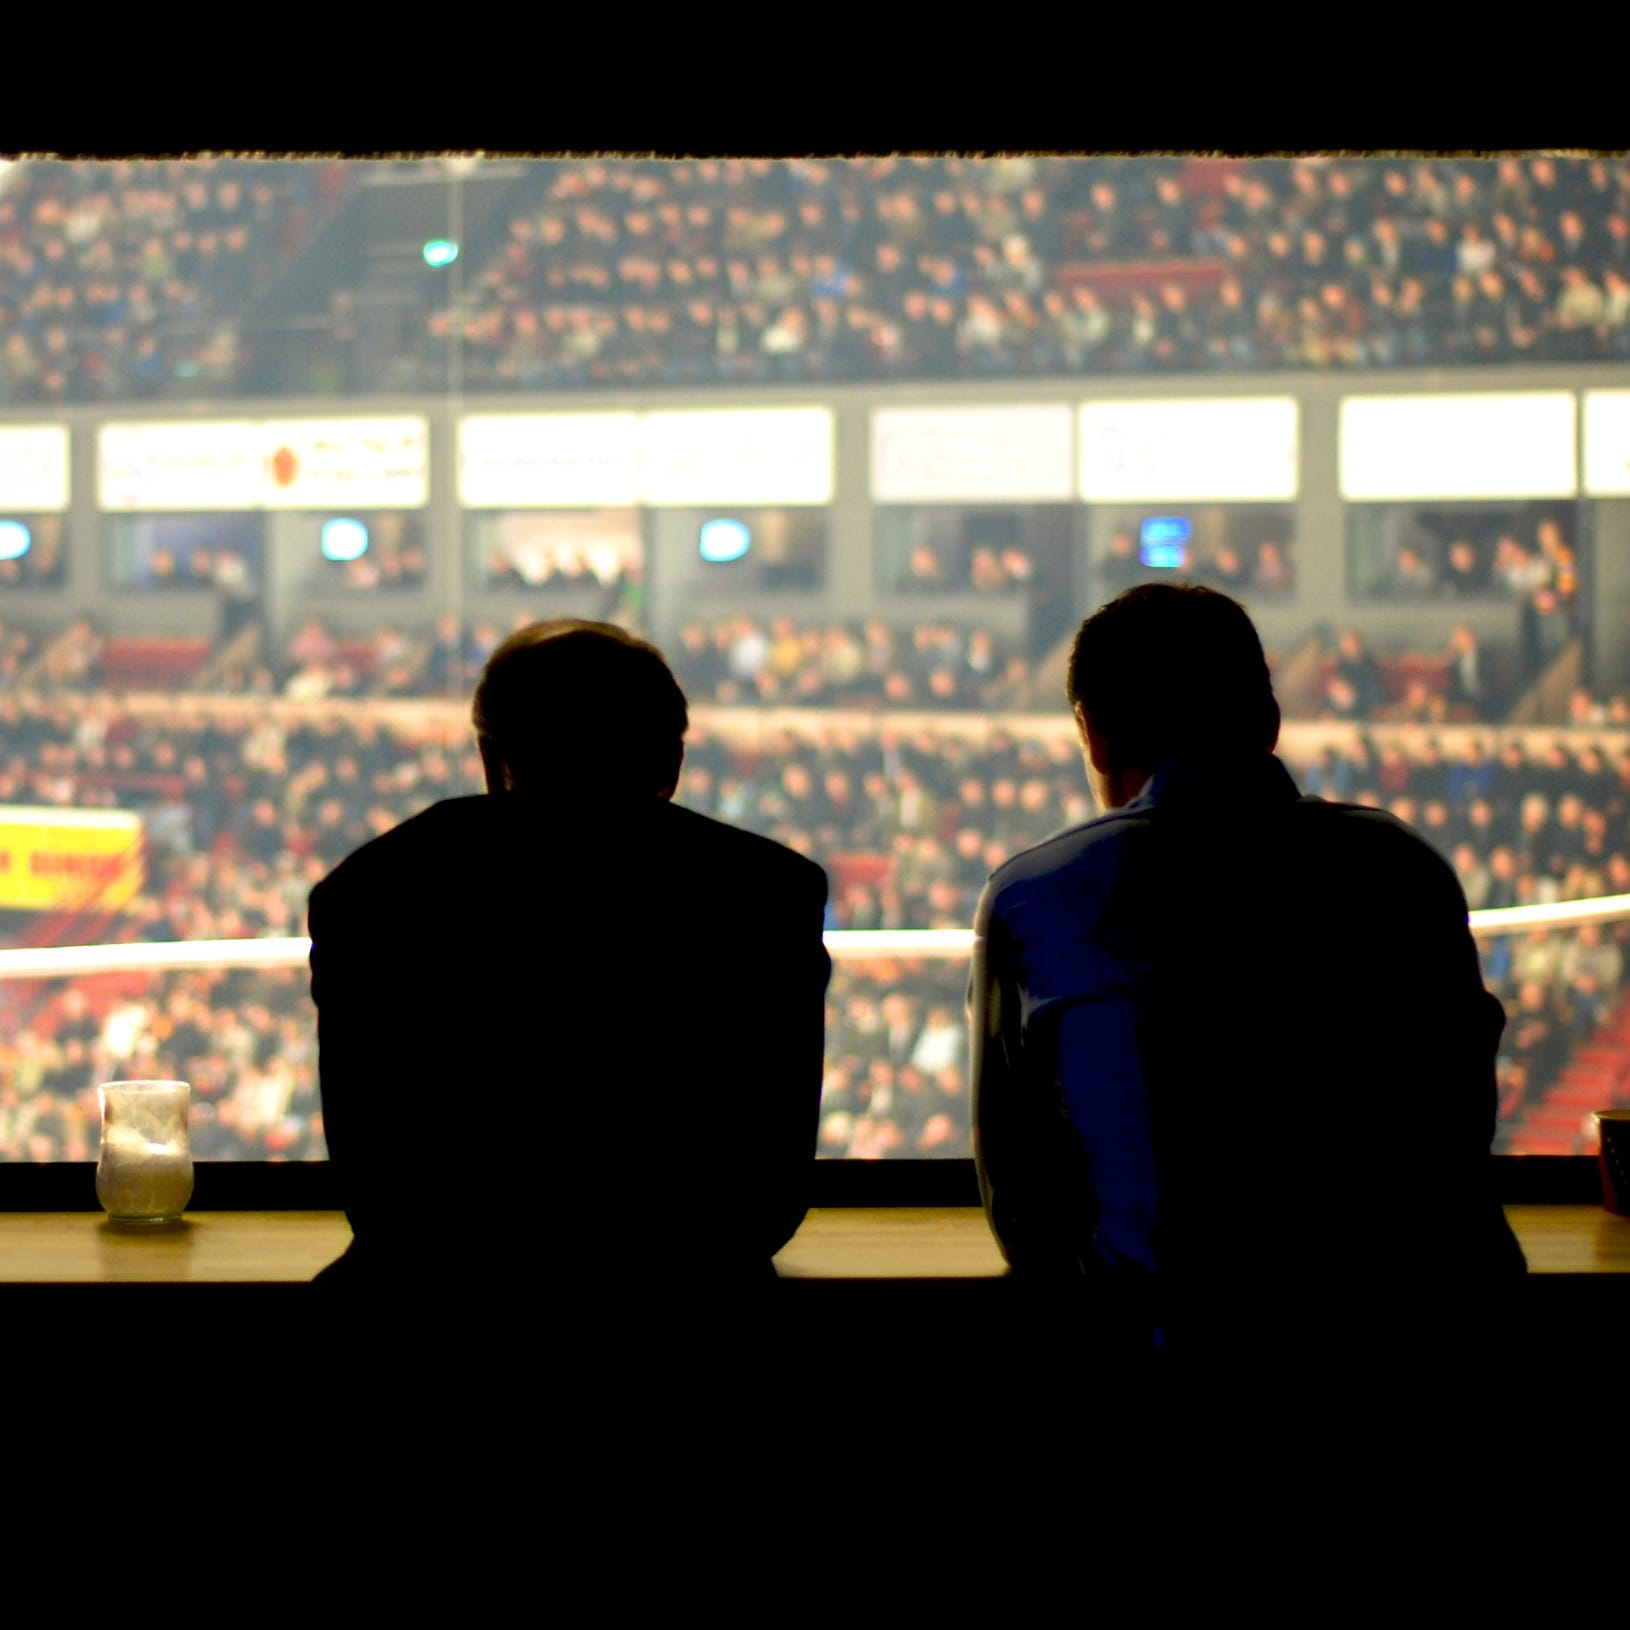 Sports casters in press room commenting on the game.